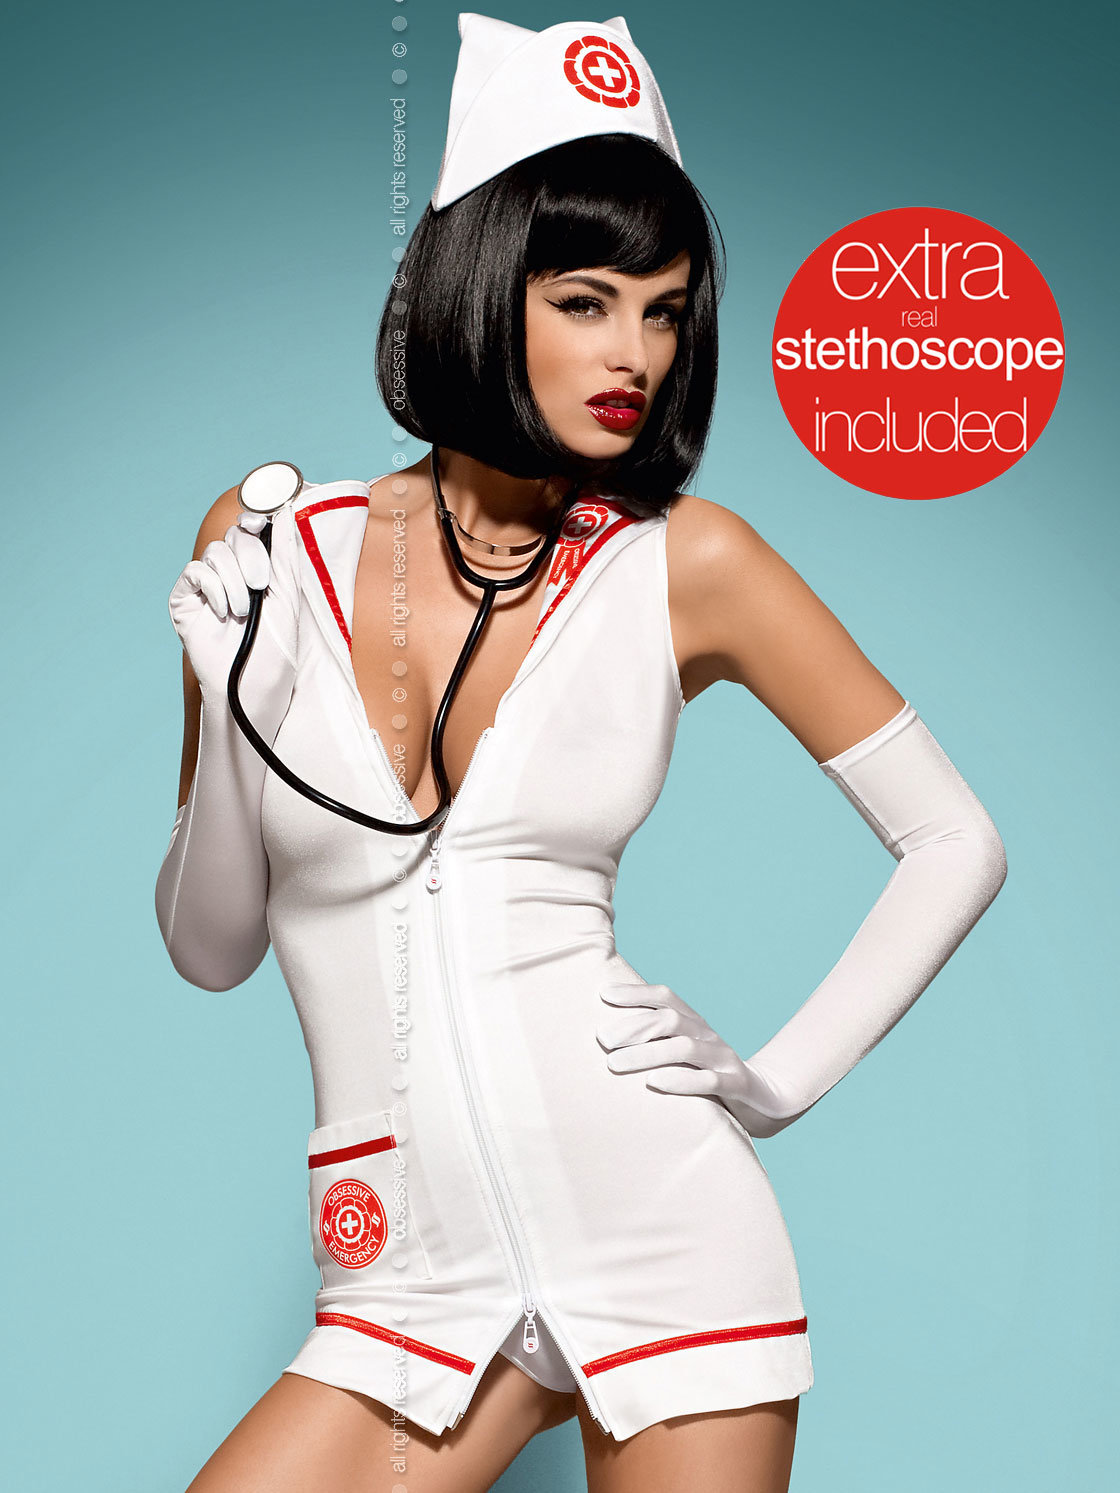 Obsessive Costum Emergency dress + stethoscope